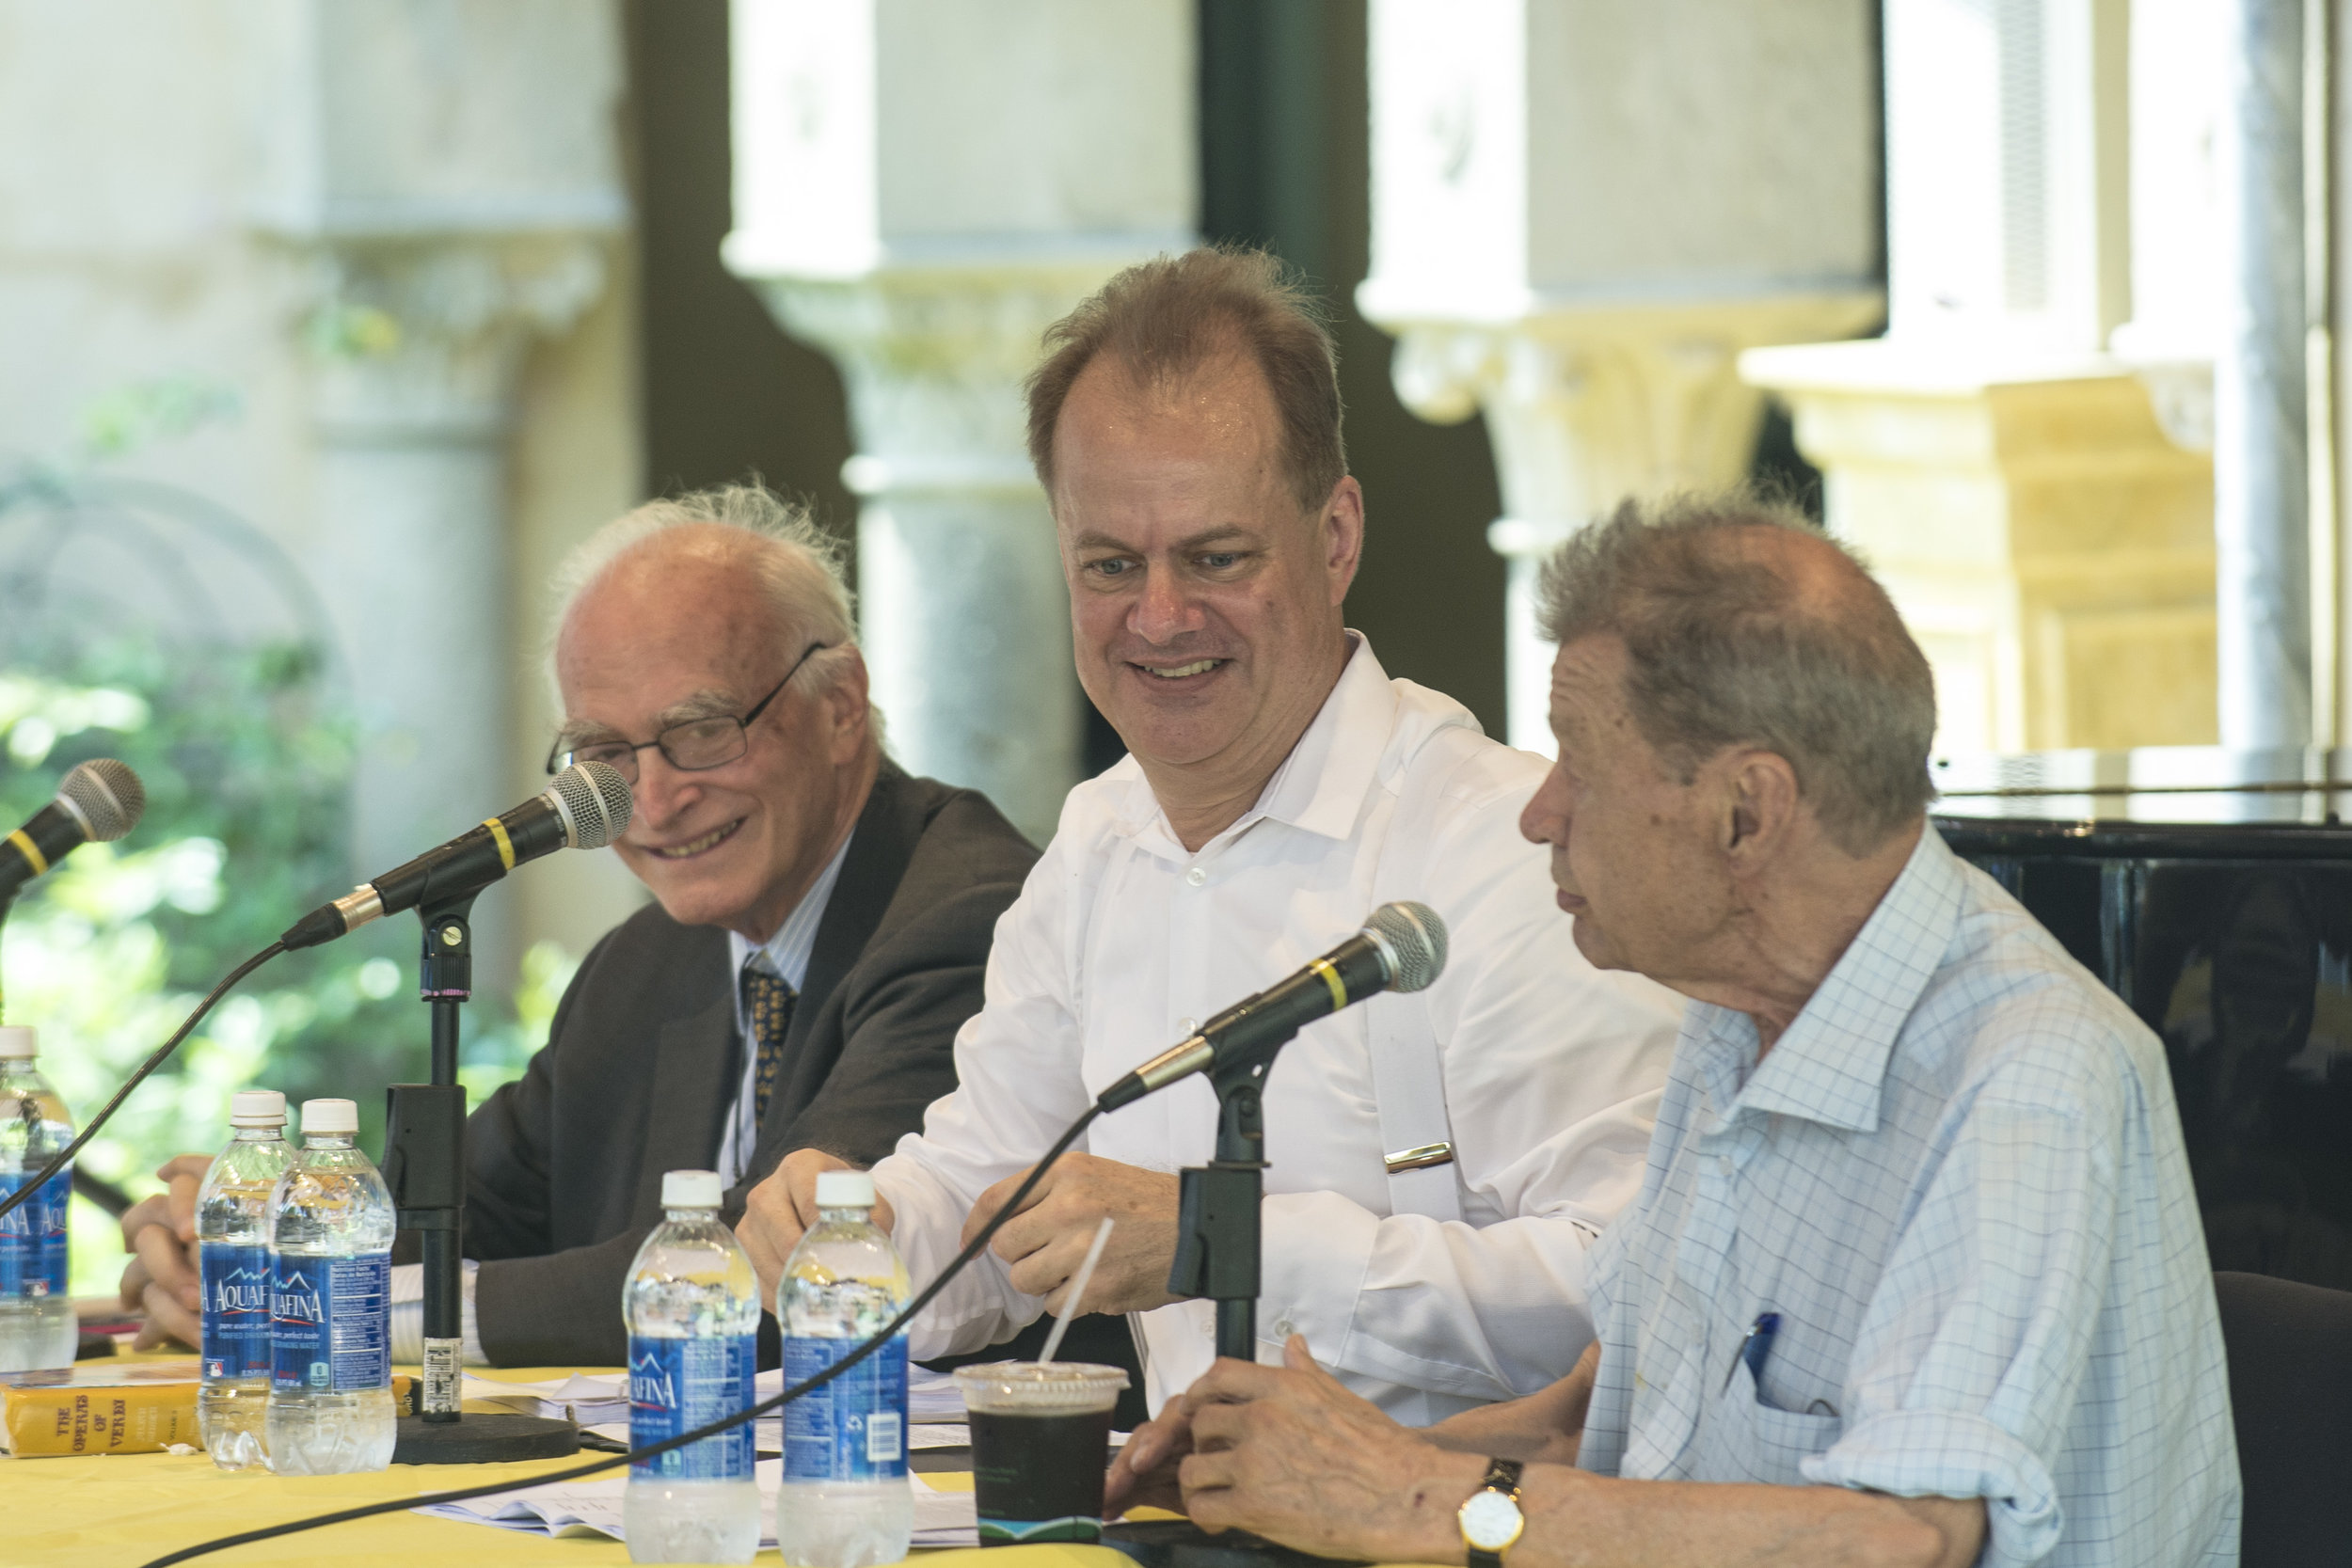 Philip Gossett, Will Crutchfield and Andrew Porter in a panel discussion at Caramoor (photo © Gabe Palacio)